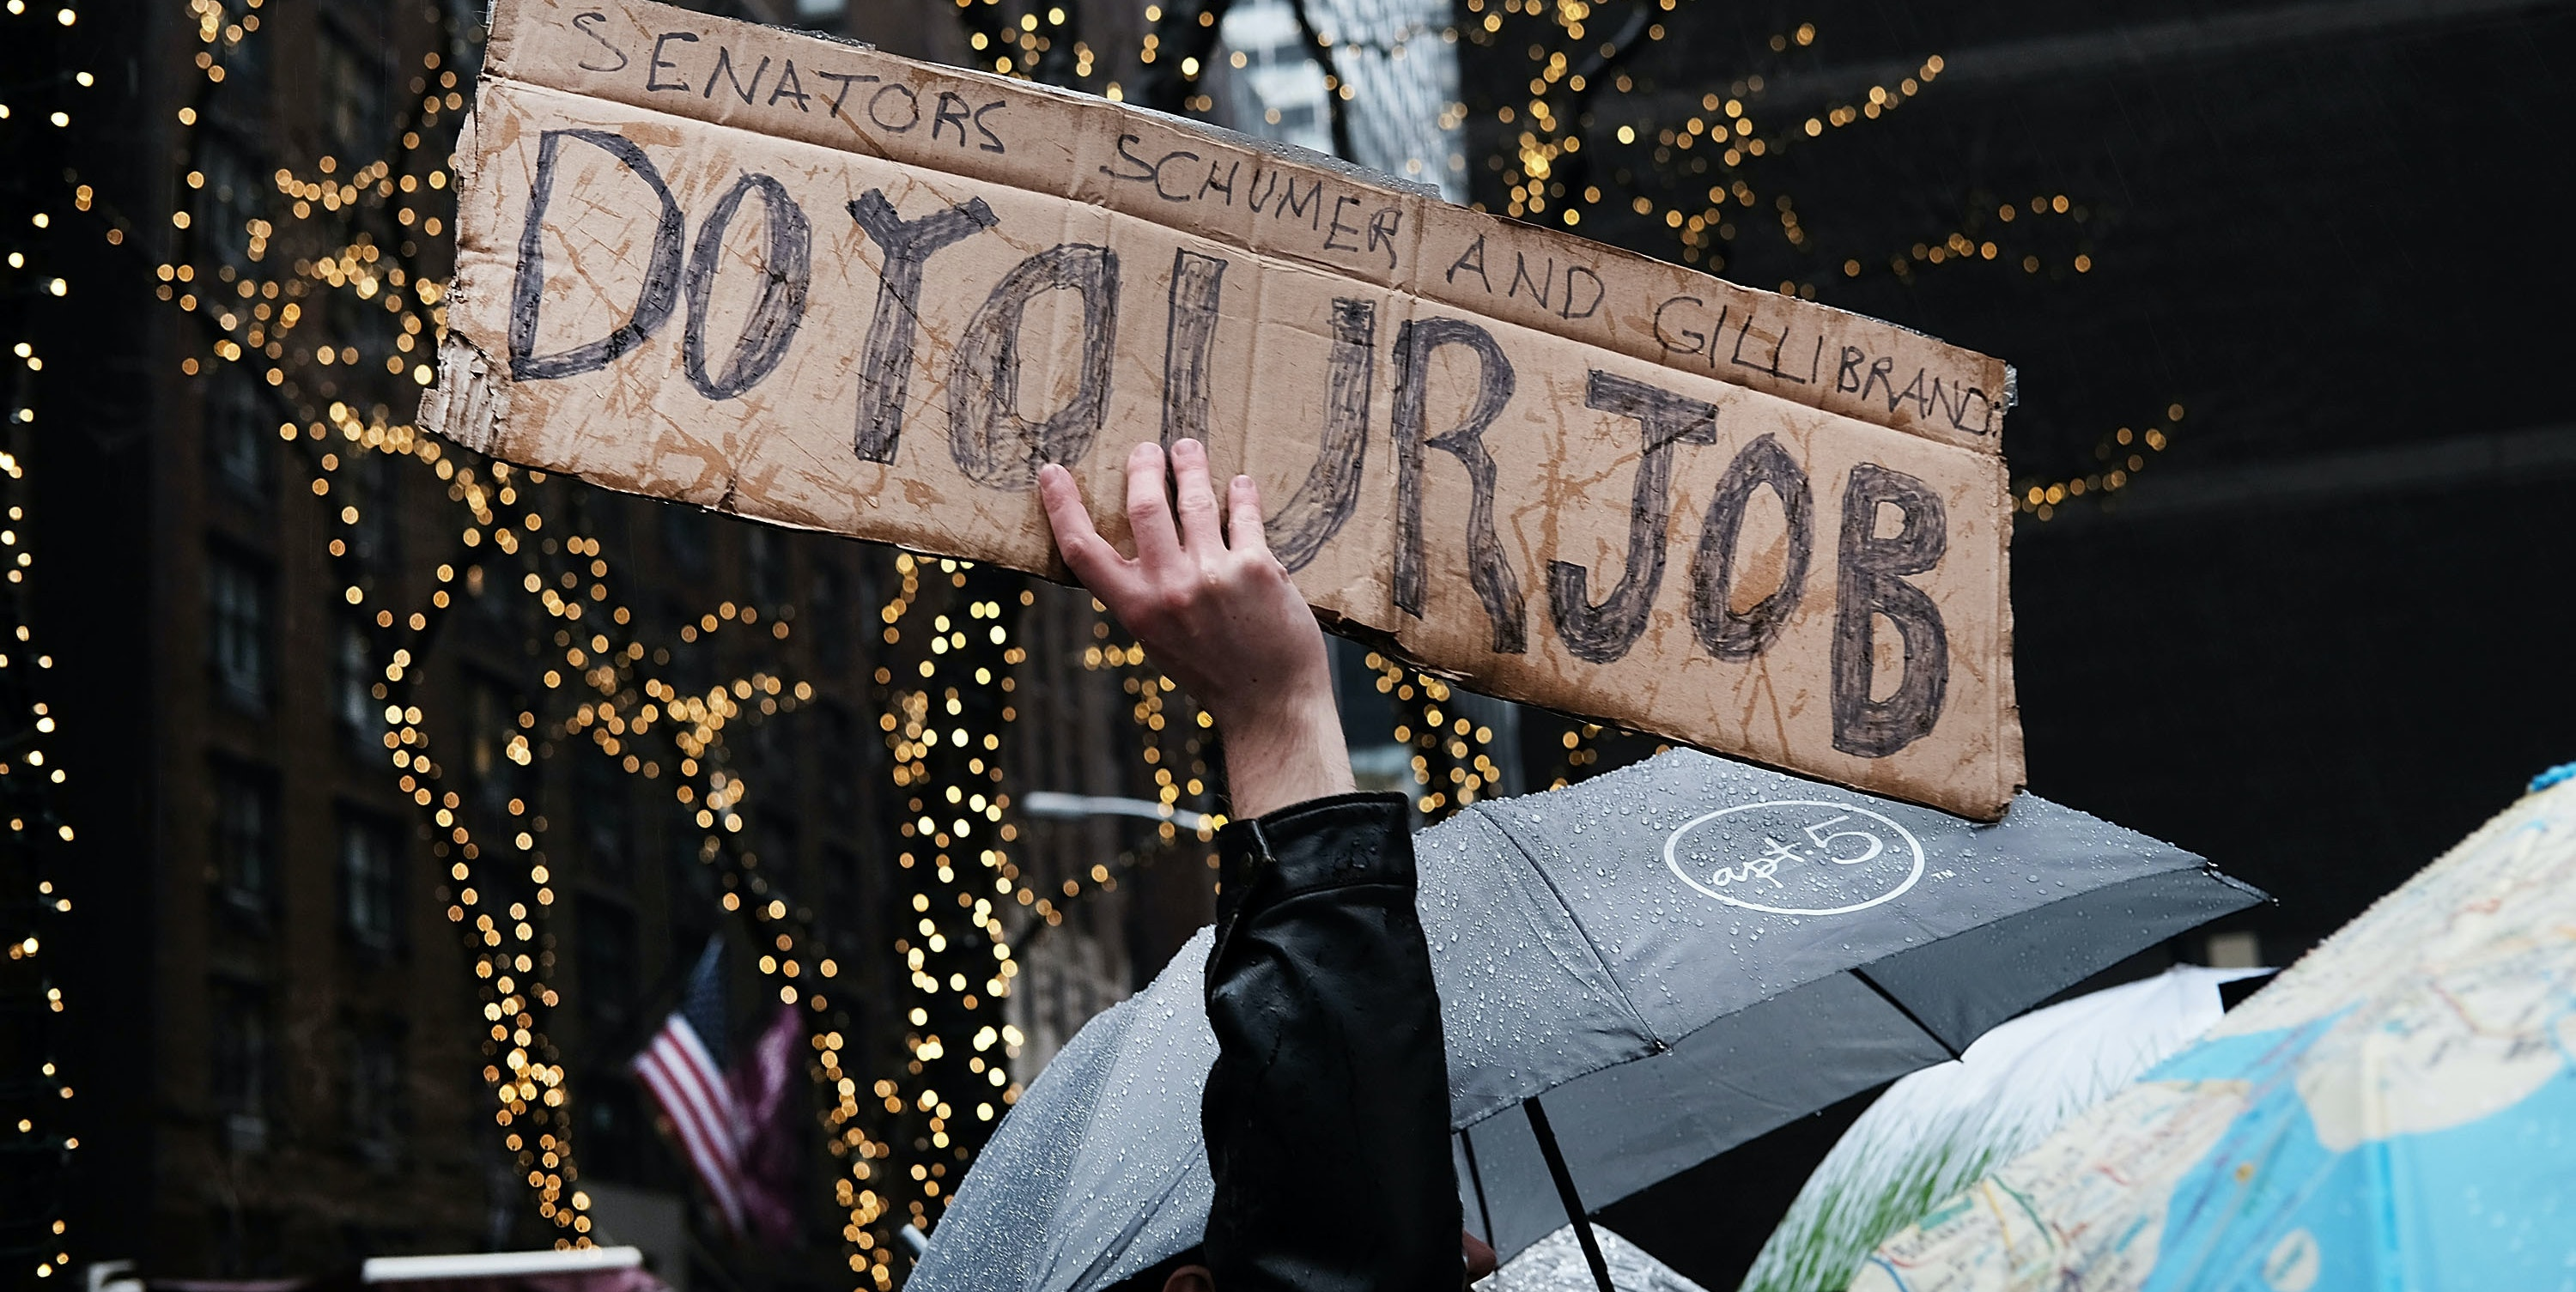 NEW YORK, NY - JANUARY 24:  Over 100 protesters hold a rally in heavy rain outside of the offices of Democratic Senators Chuck Schumer and Kirsten Gillibrand to demand that they hold up the nomination process of President Donald Trump's cabinet choices on January 24, 2017 in New York City.